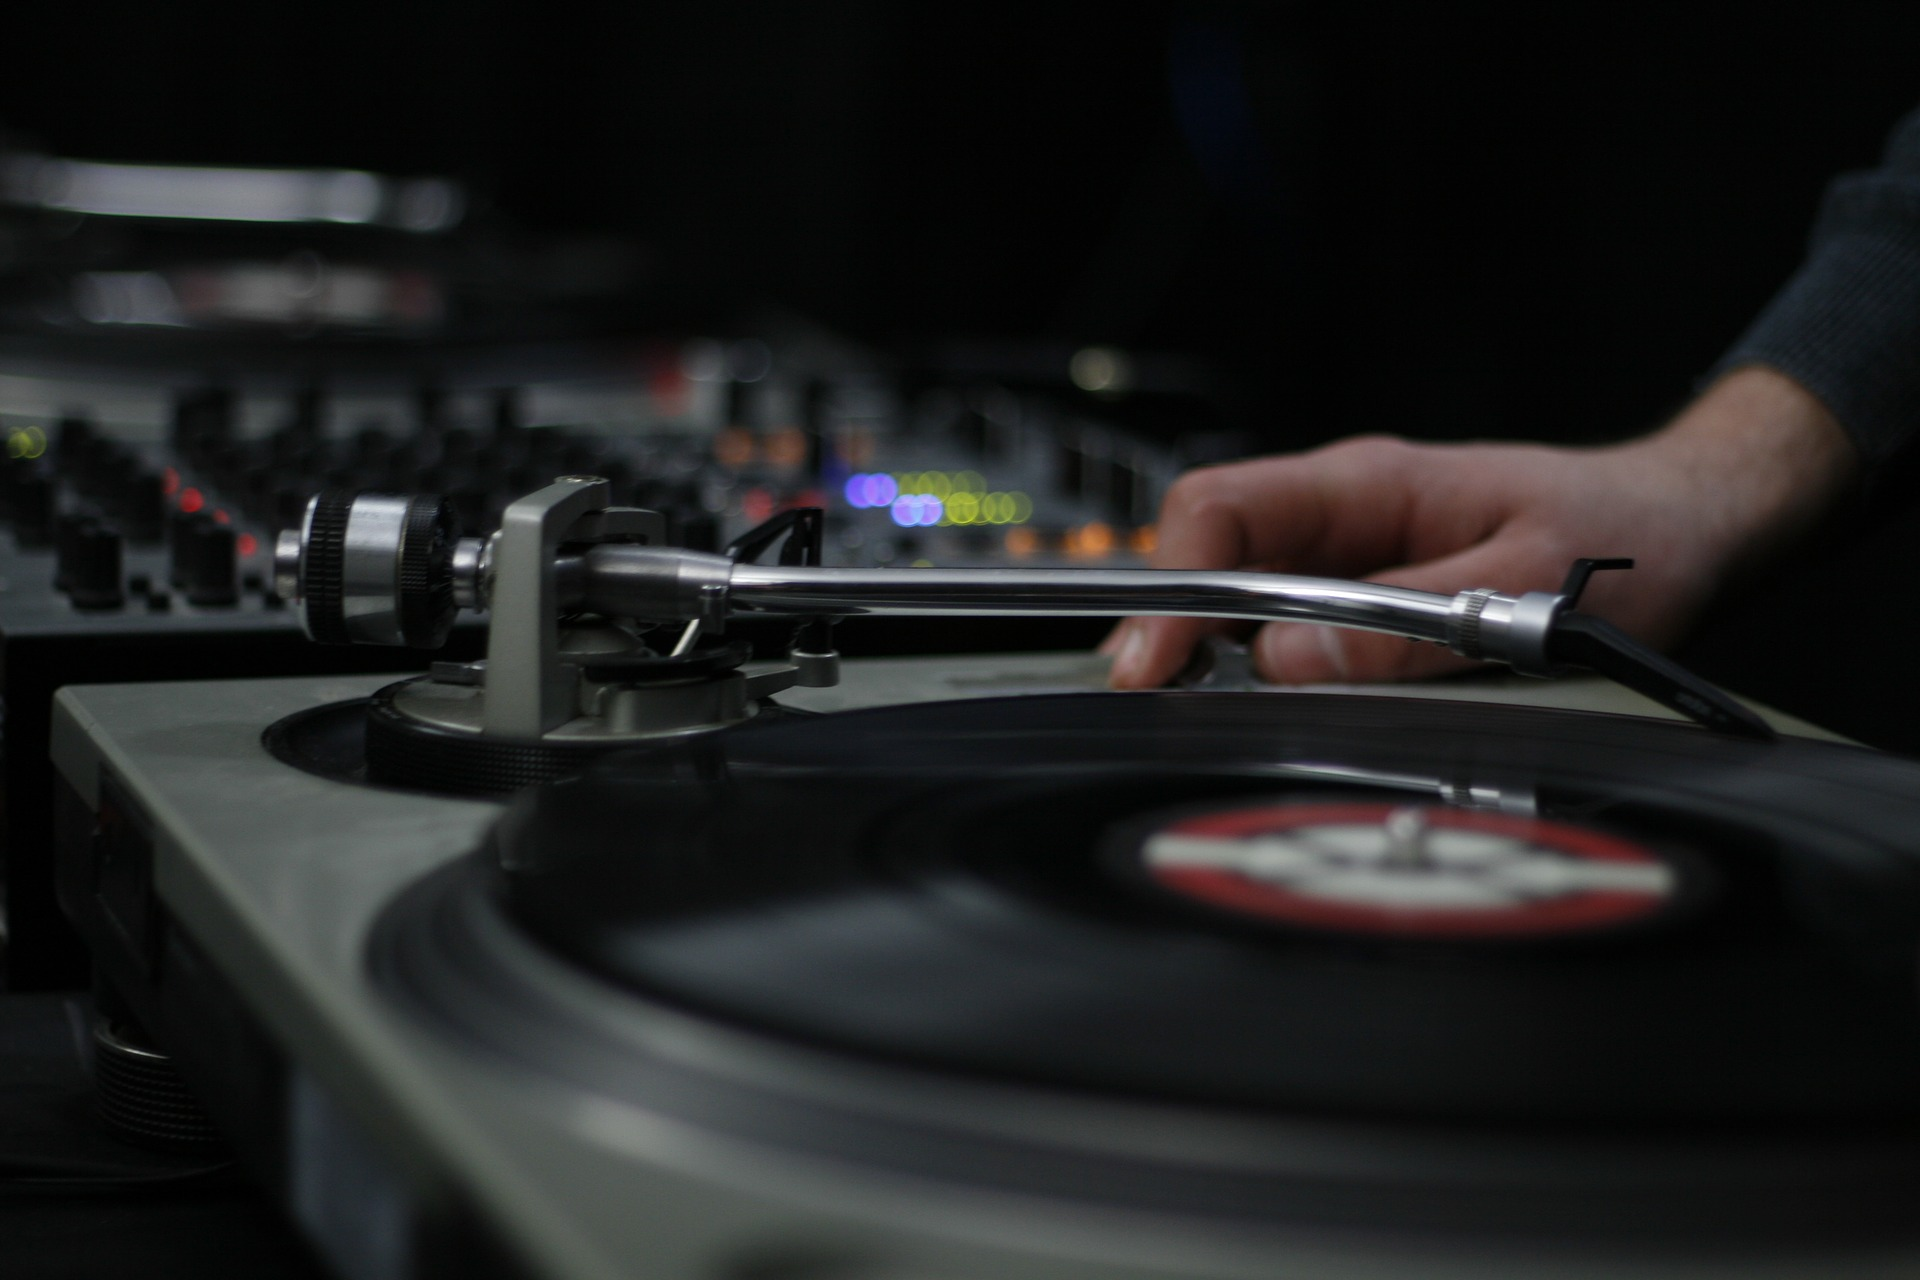 Electronic music straight from vinyl